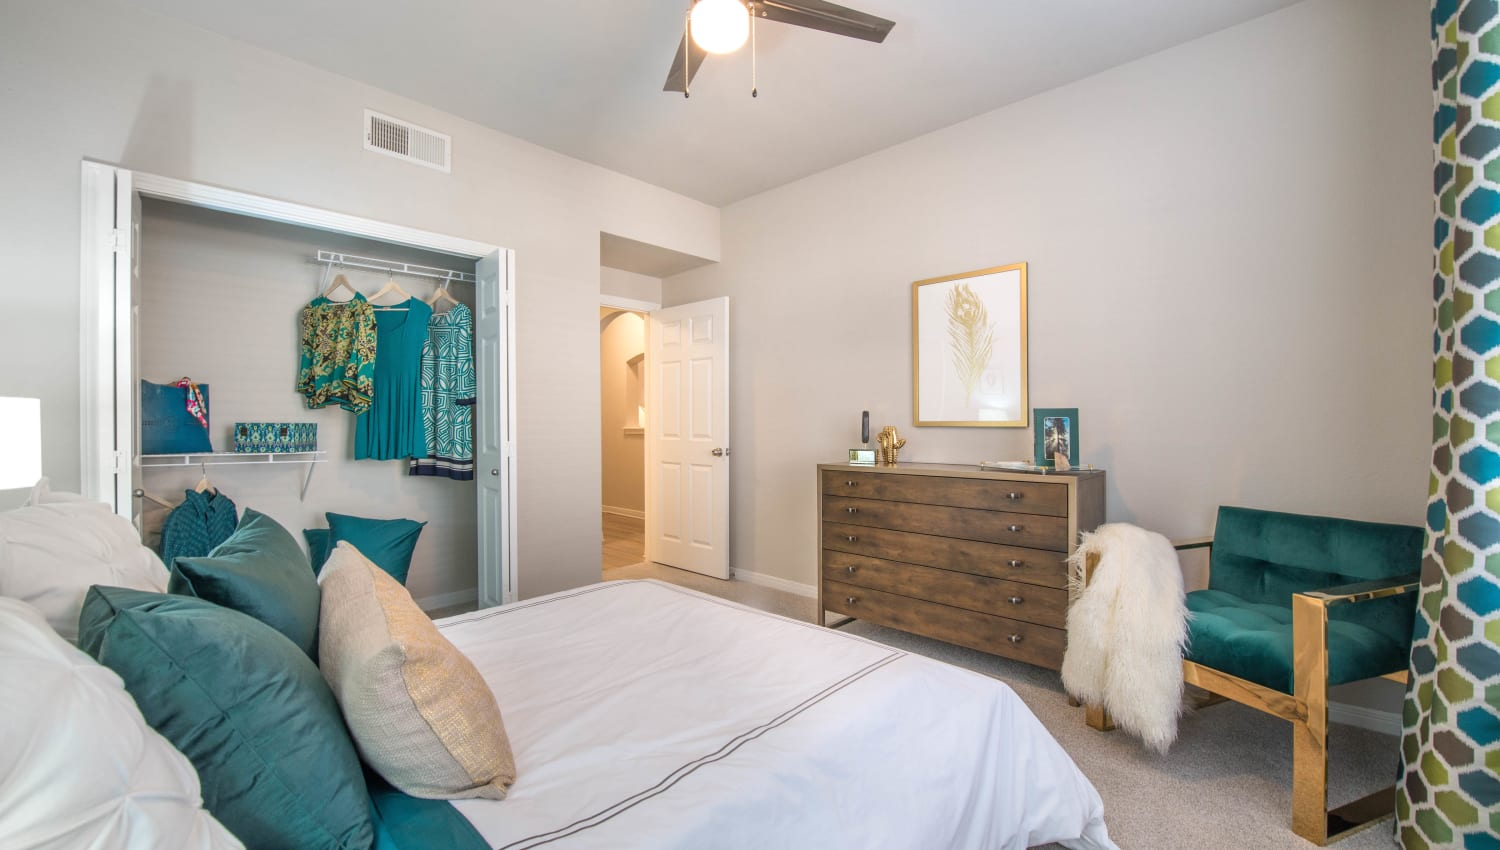 Large closet and a ceiling fan in a model home's bedroom at Olympus Town Center in Keller, Texas